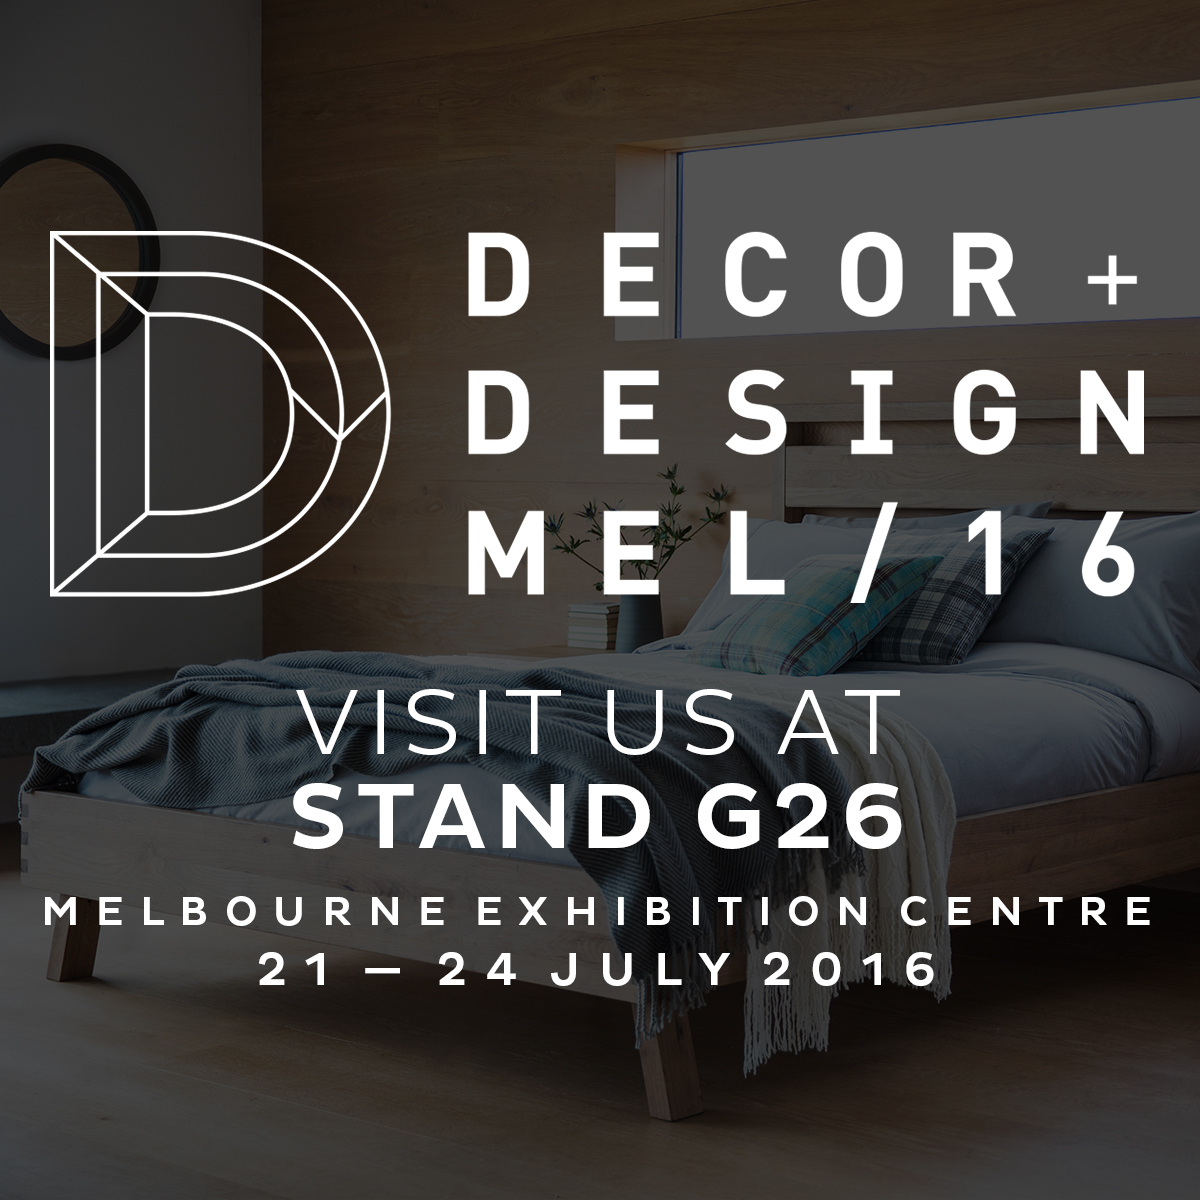 See us at the Decor Design Show - 21-24 July. Stand G26